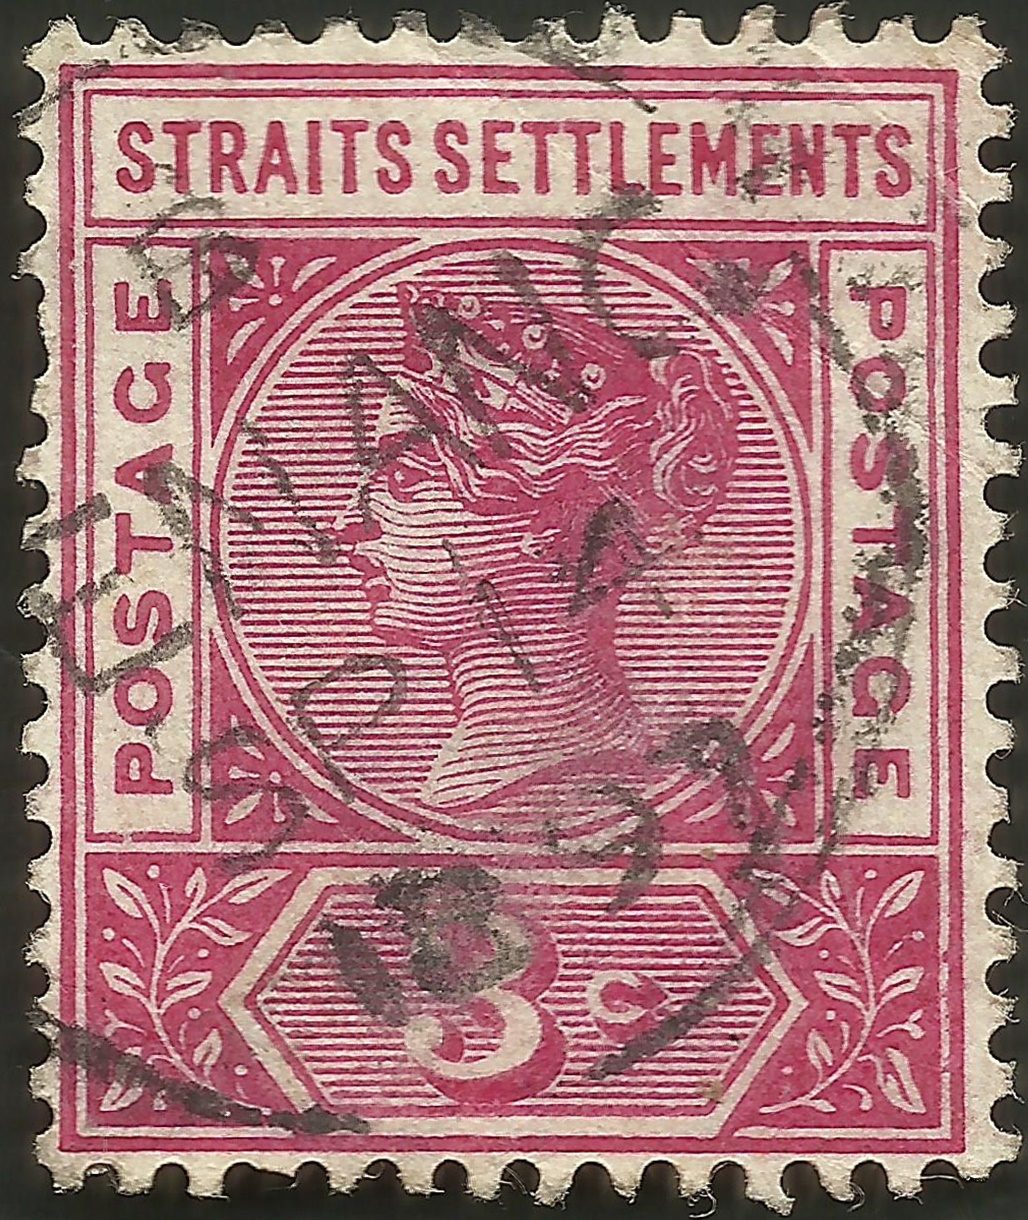 Straits Settlements #84 (1895) postmarked 14 September 1897 Penang (present-day Malaysia)